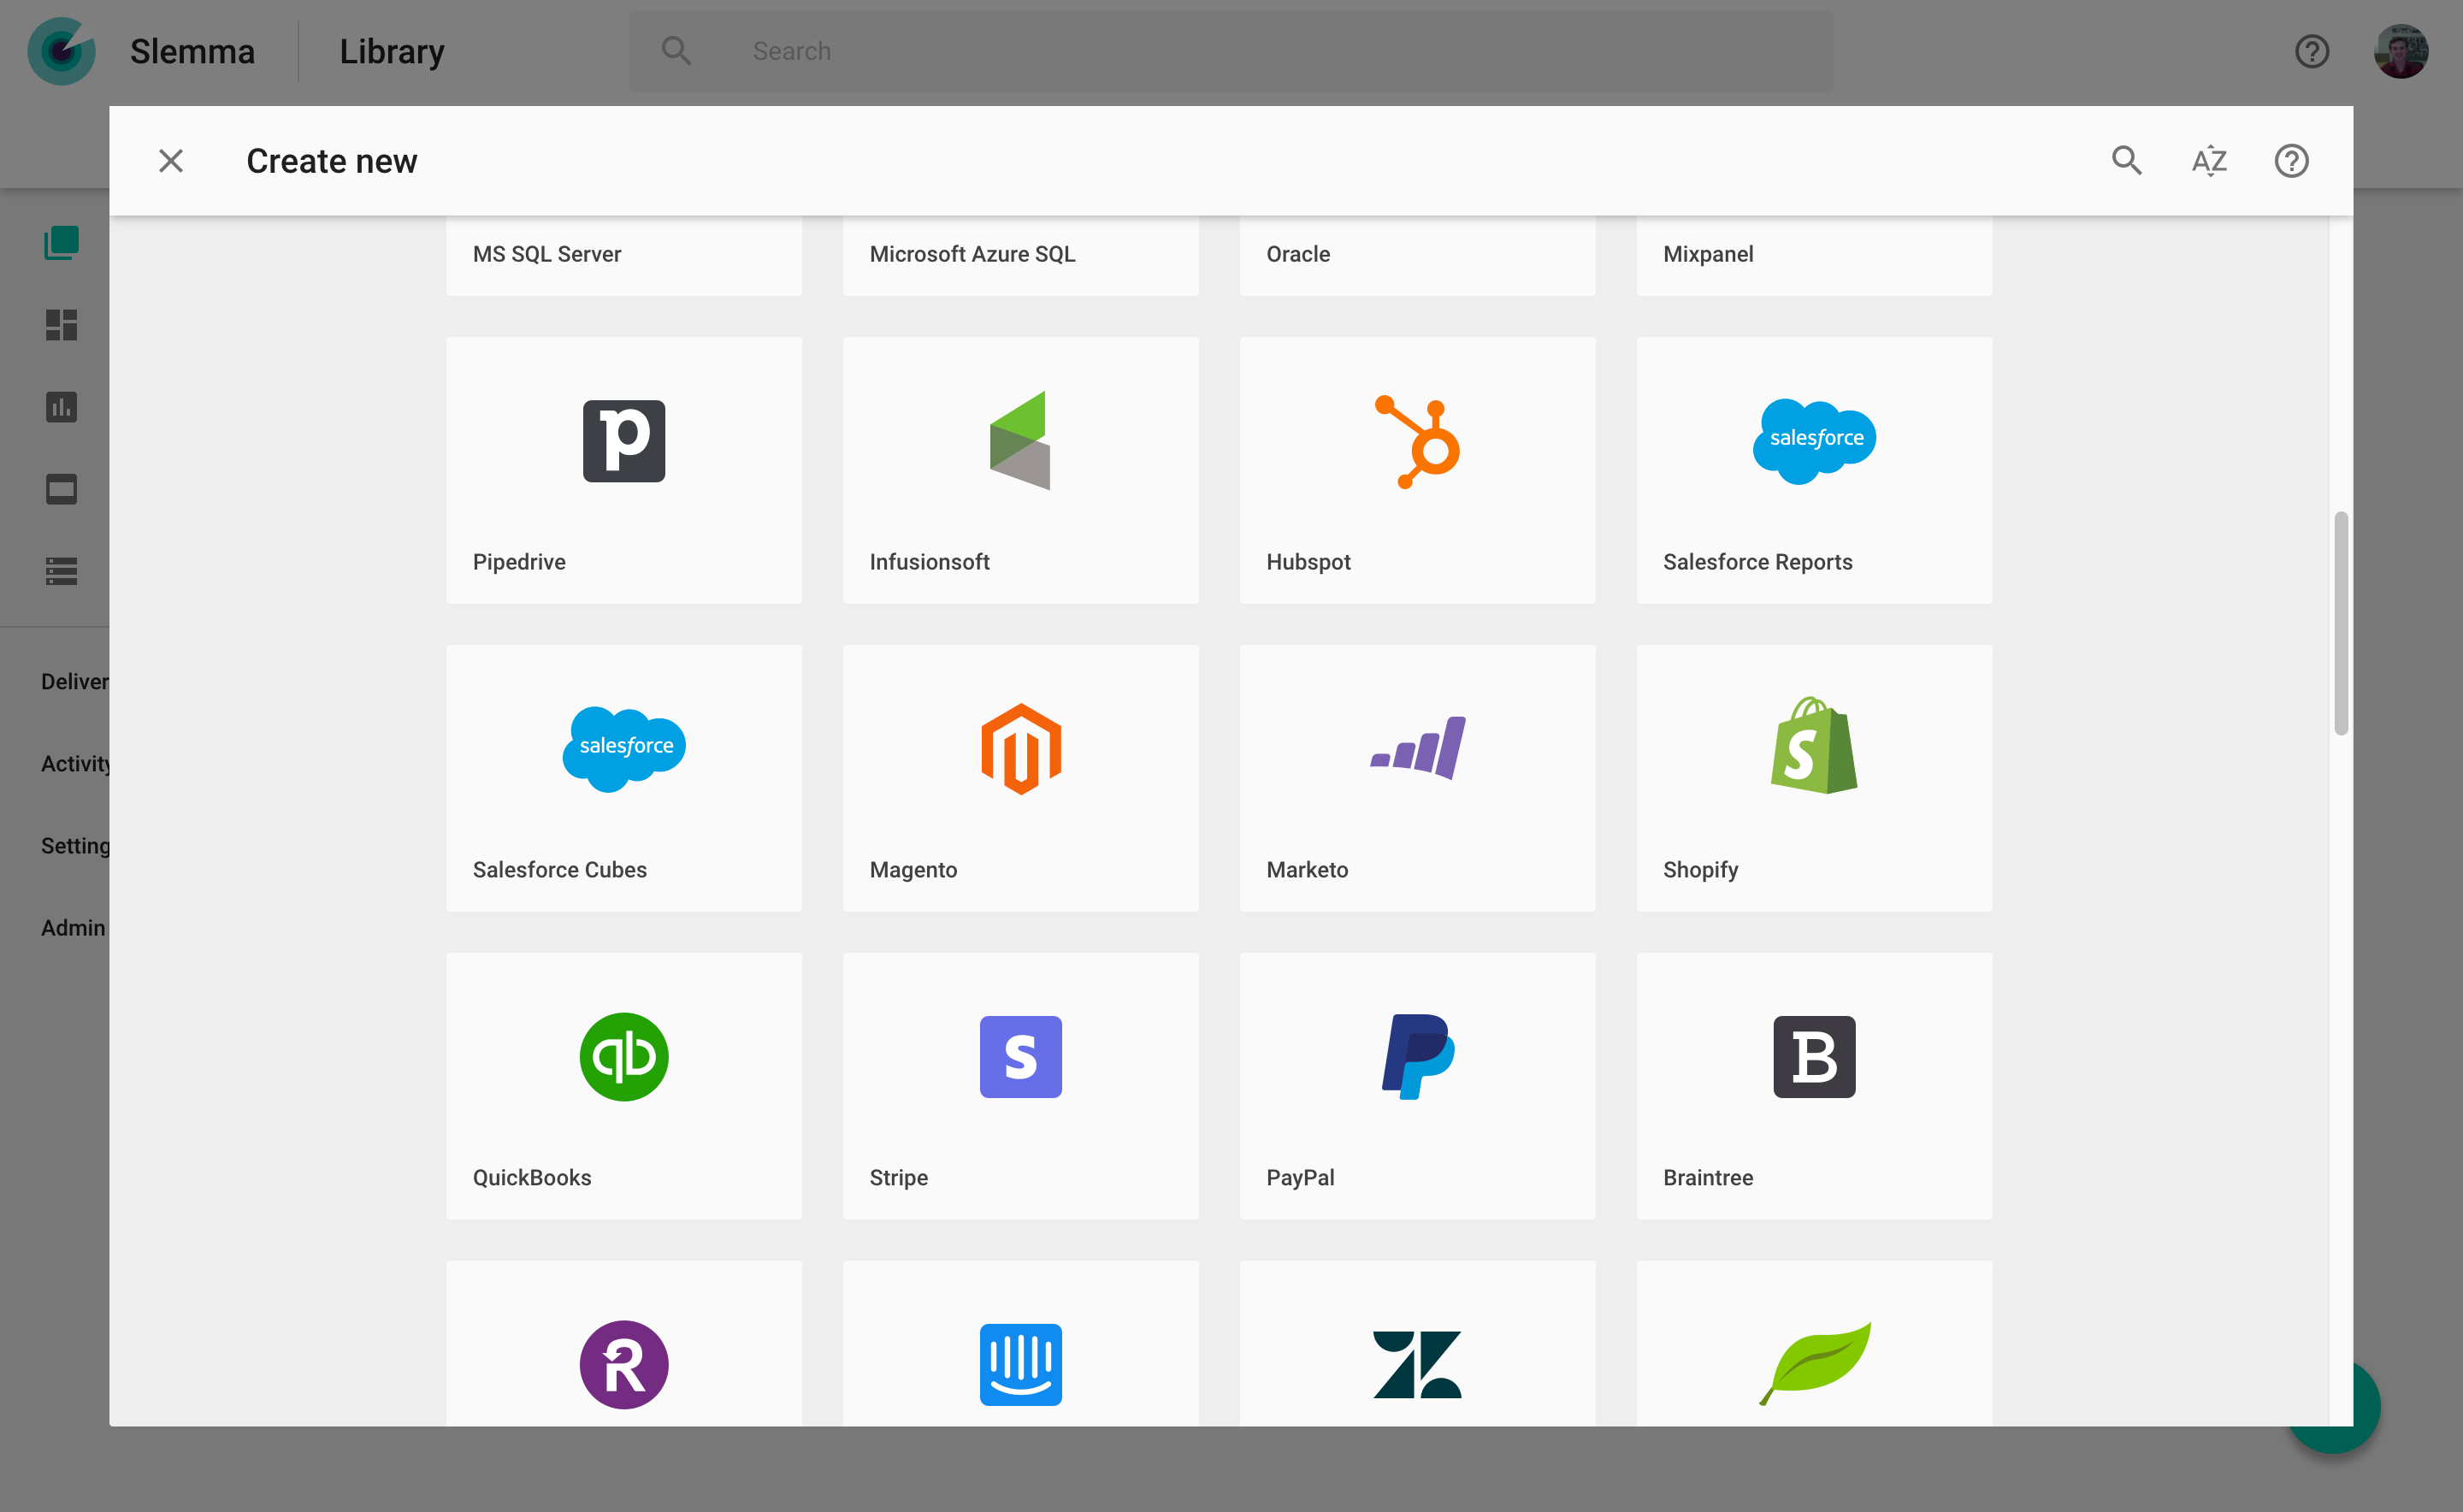 Integrate with the cloud storage, data warehouse and cloud service solutions you already use.